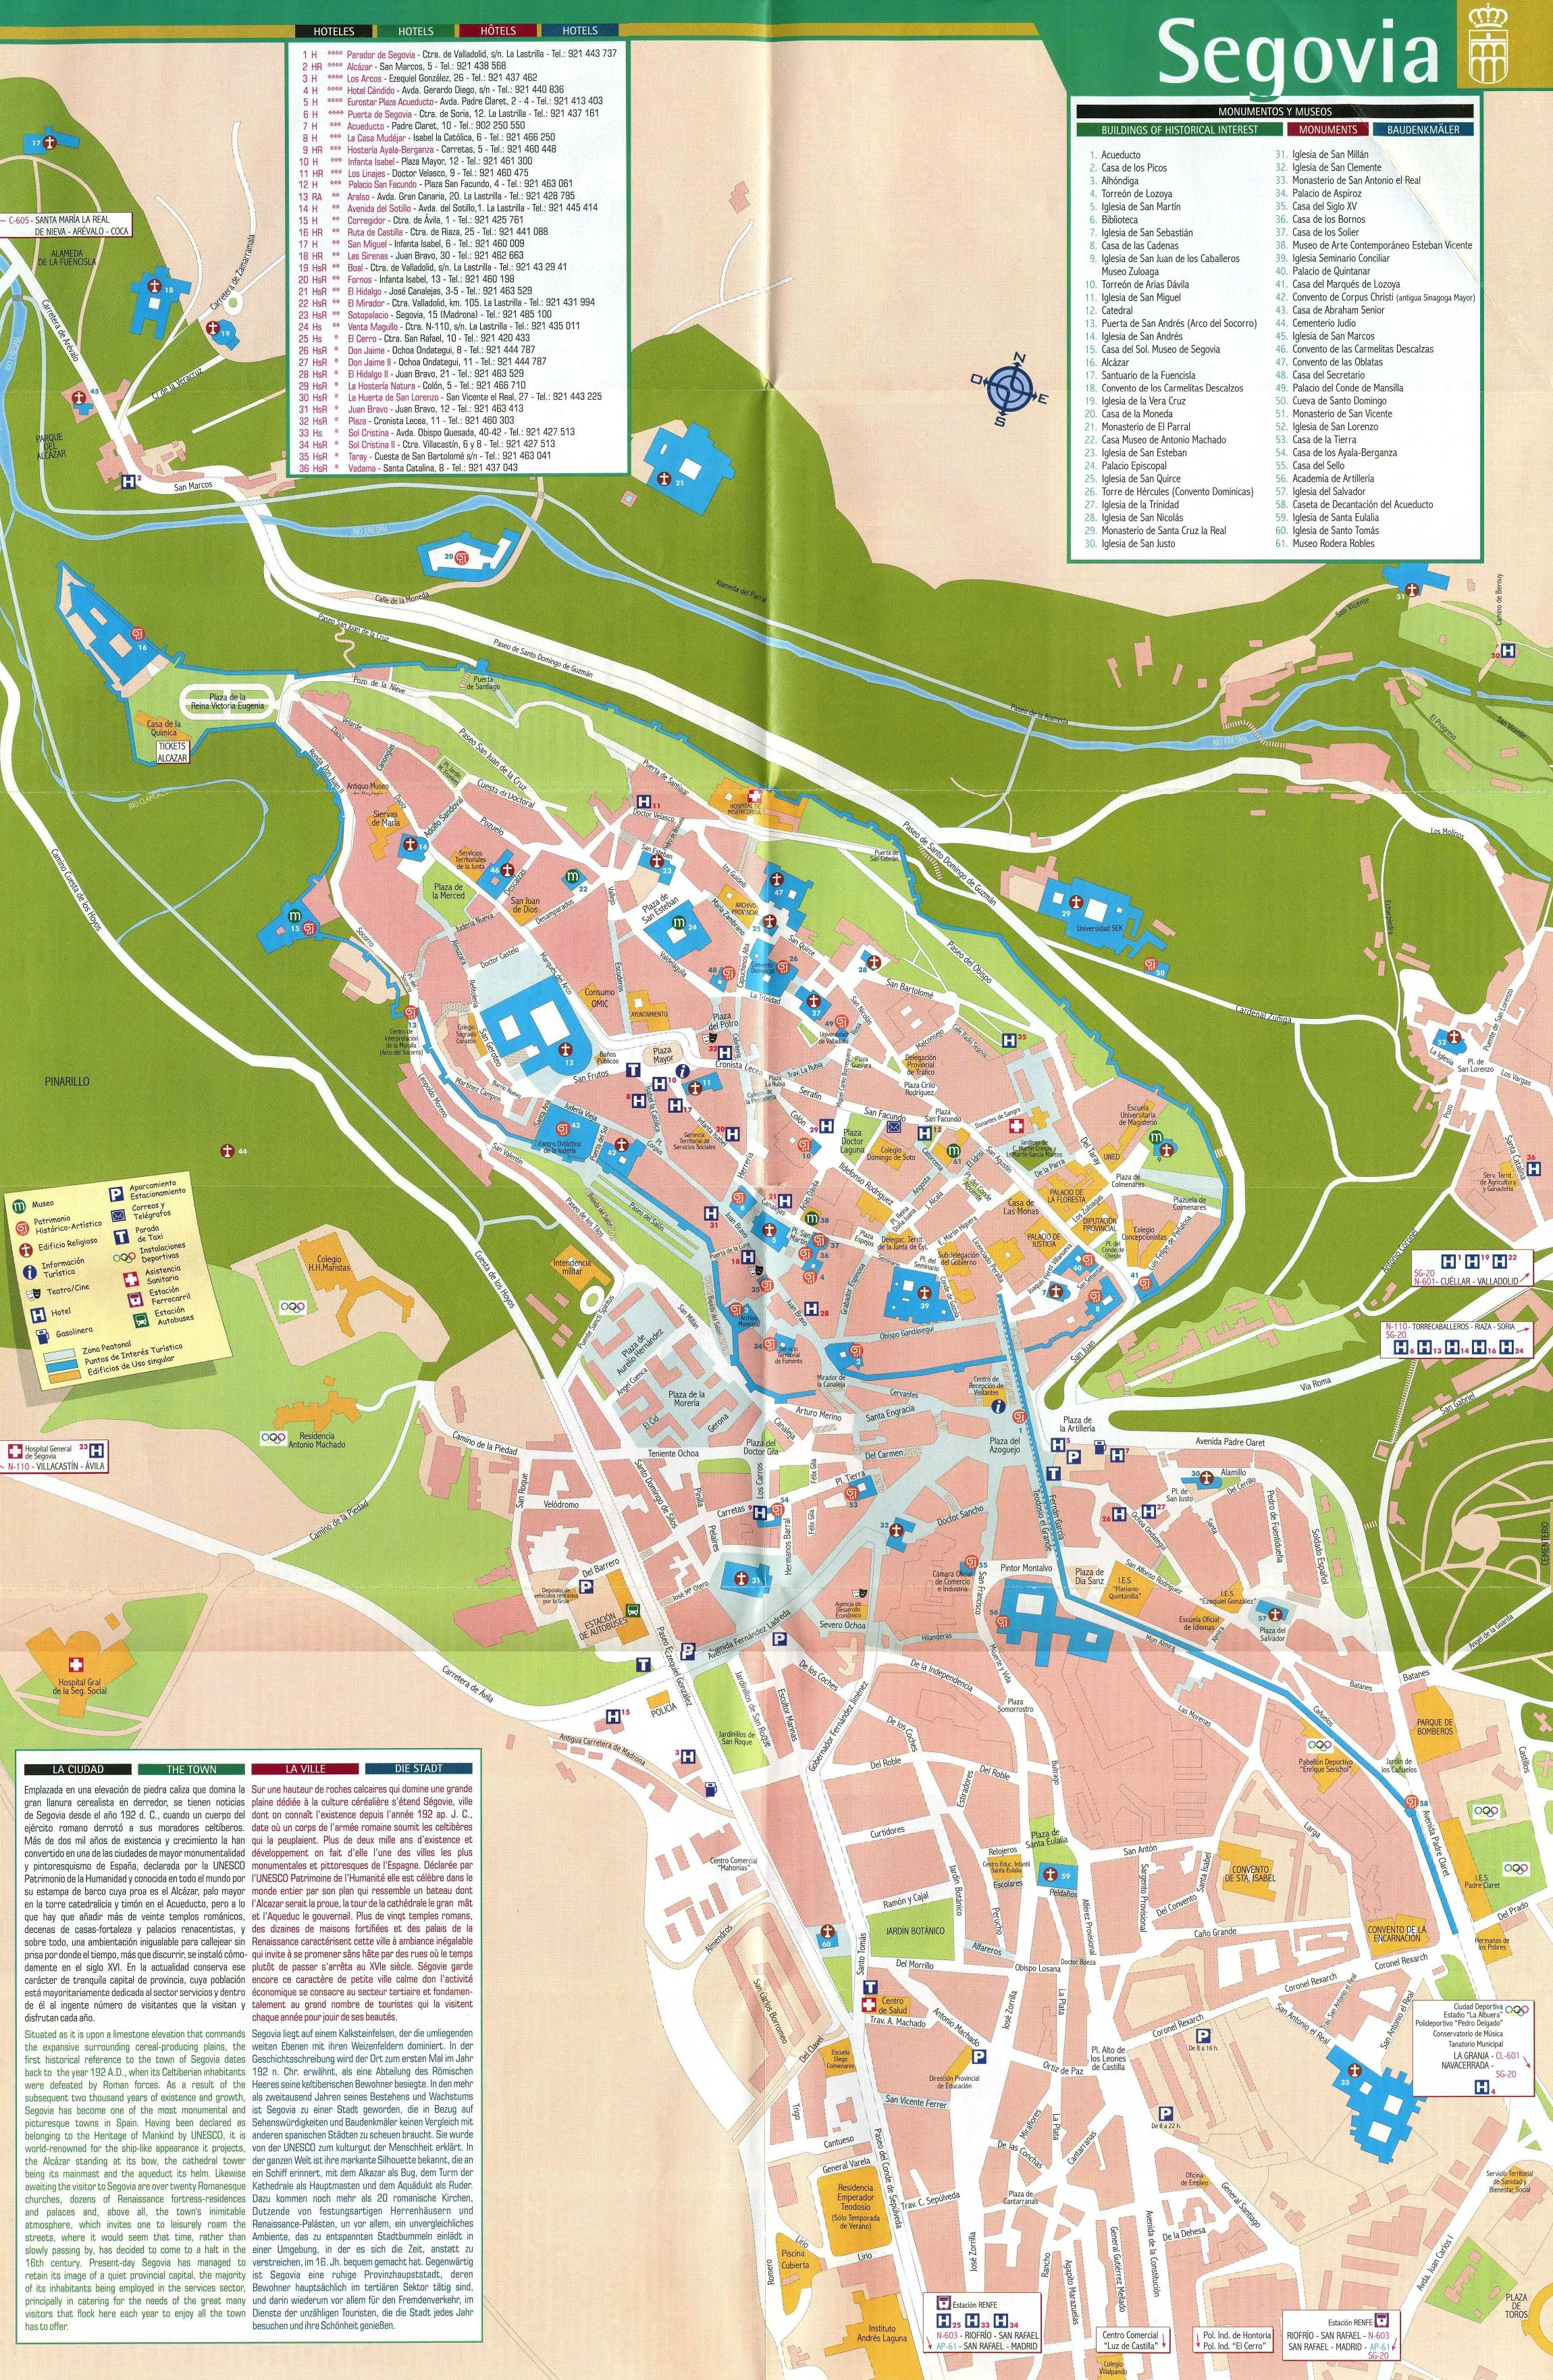 Segovia Spain Tourist Map Segovia Spain mappery